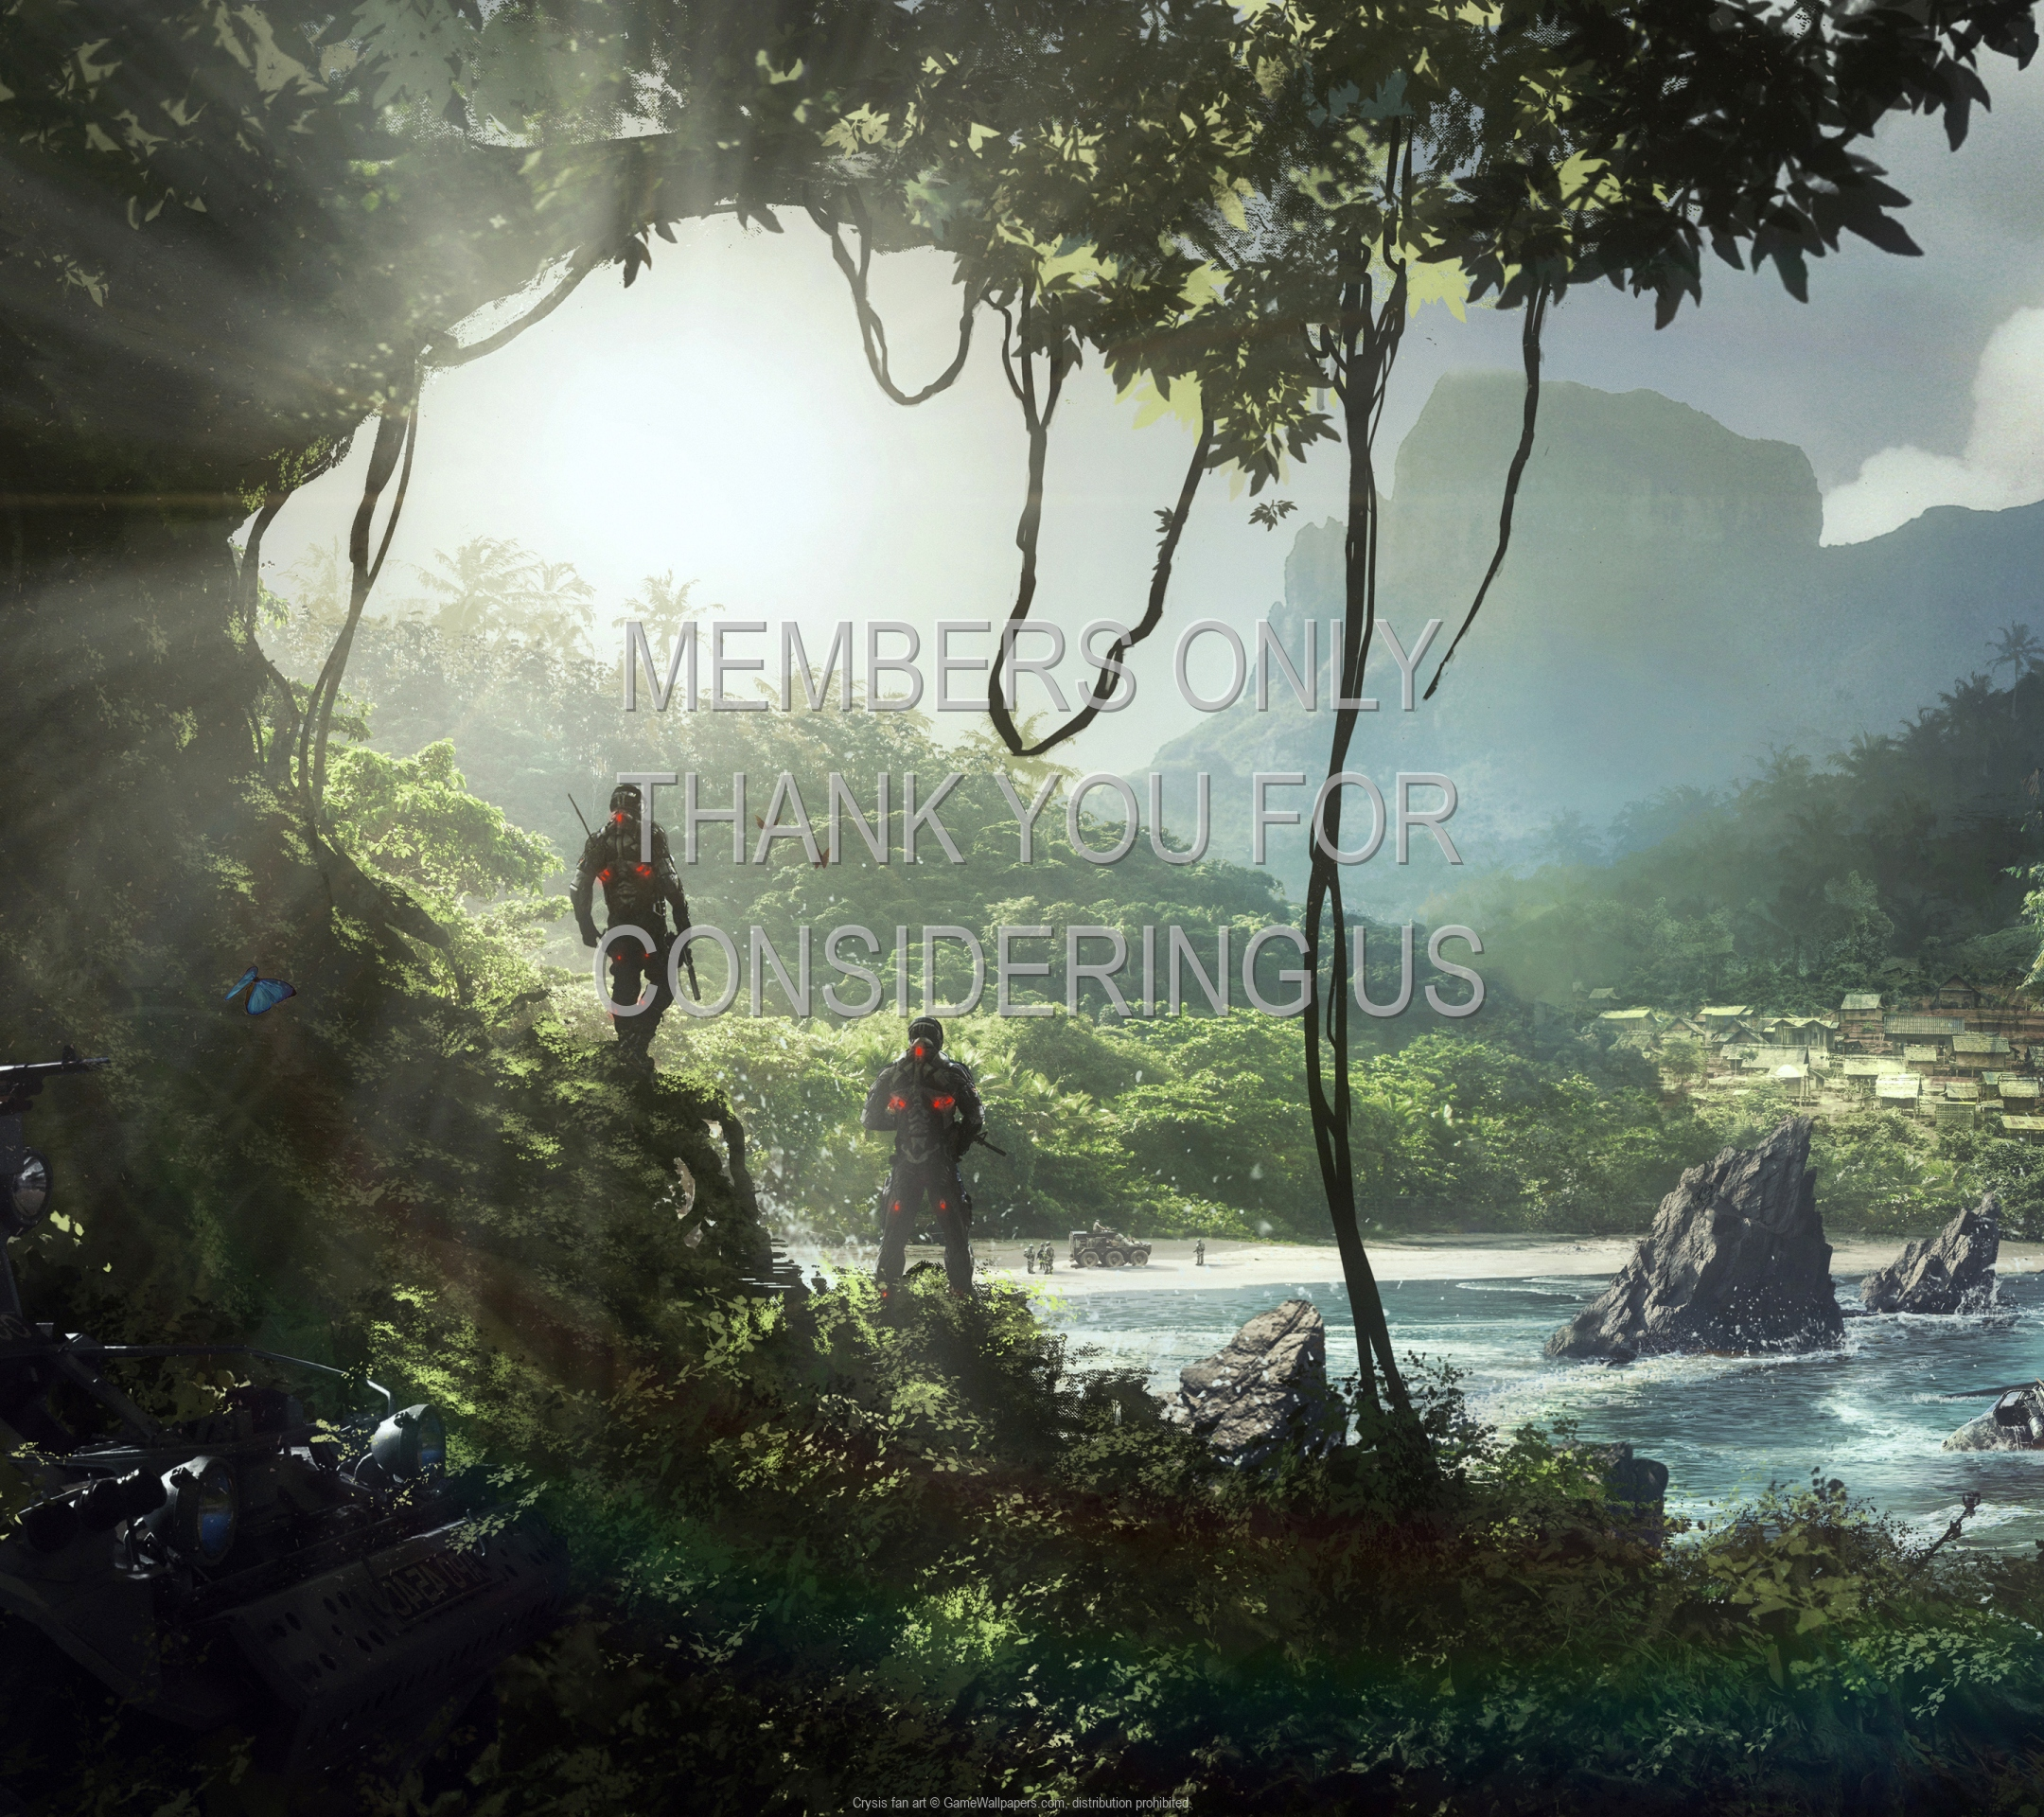 Crysis fan art 1920x1080 Móvil fondo de escritorio 01